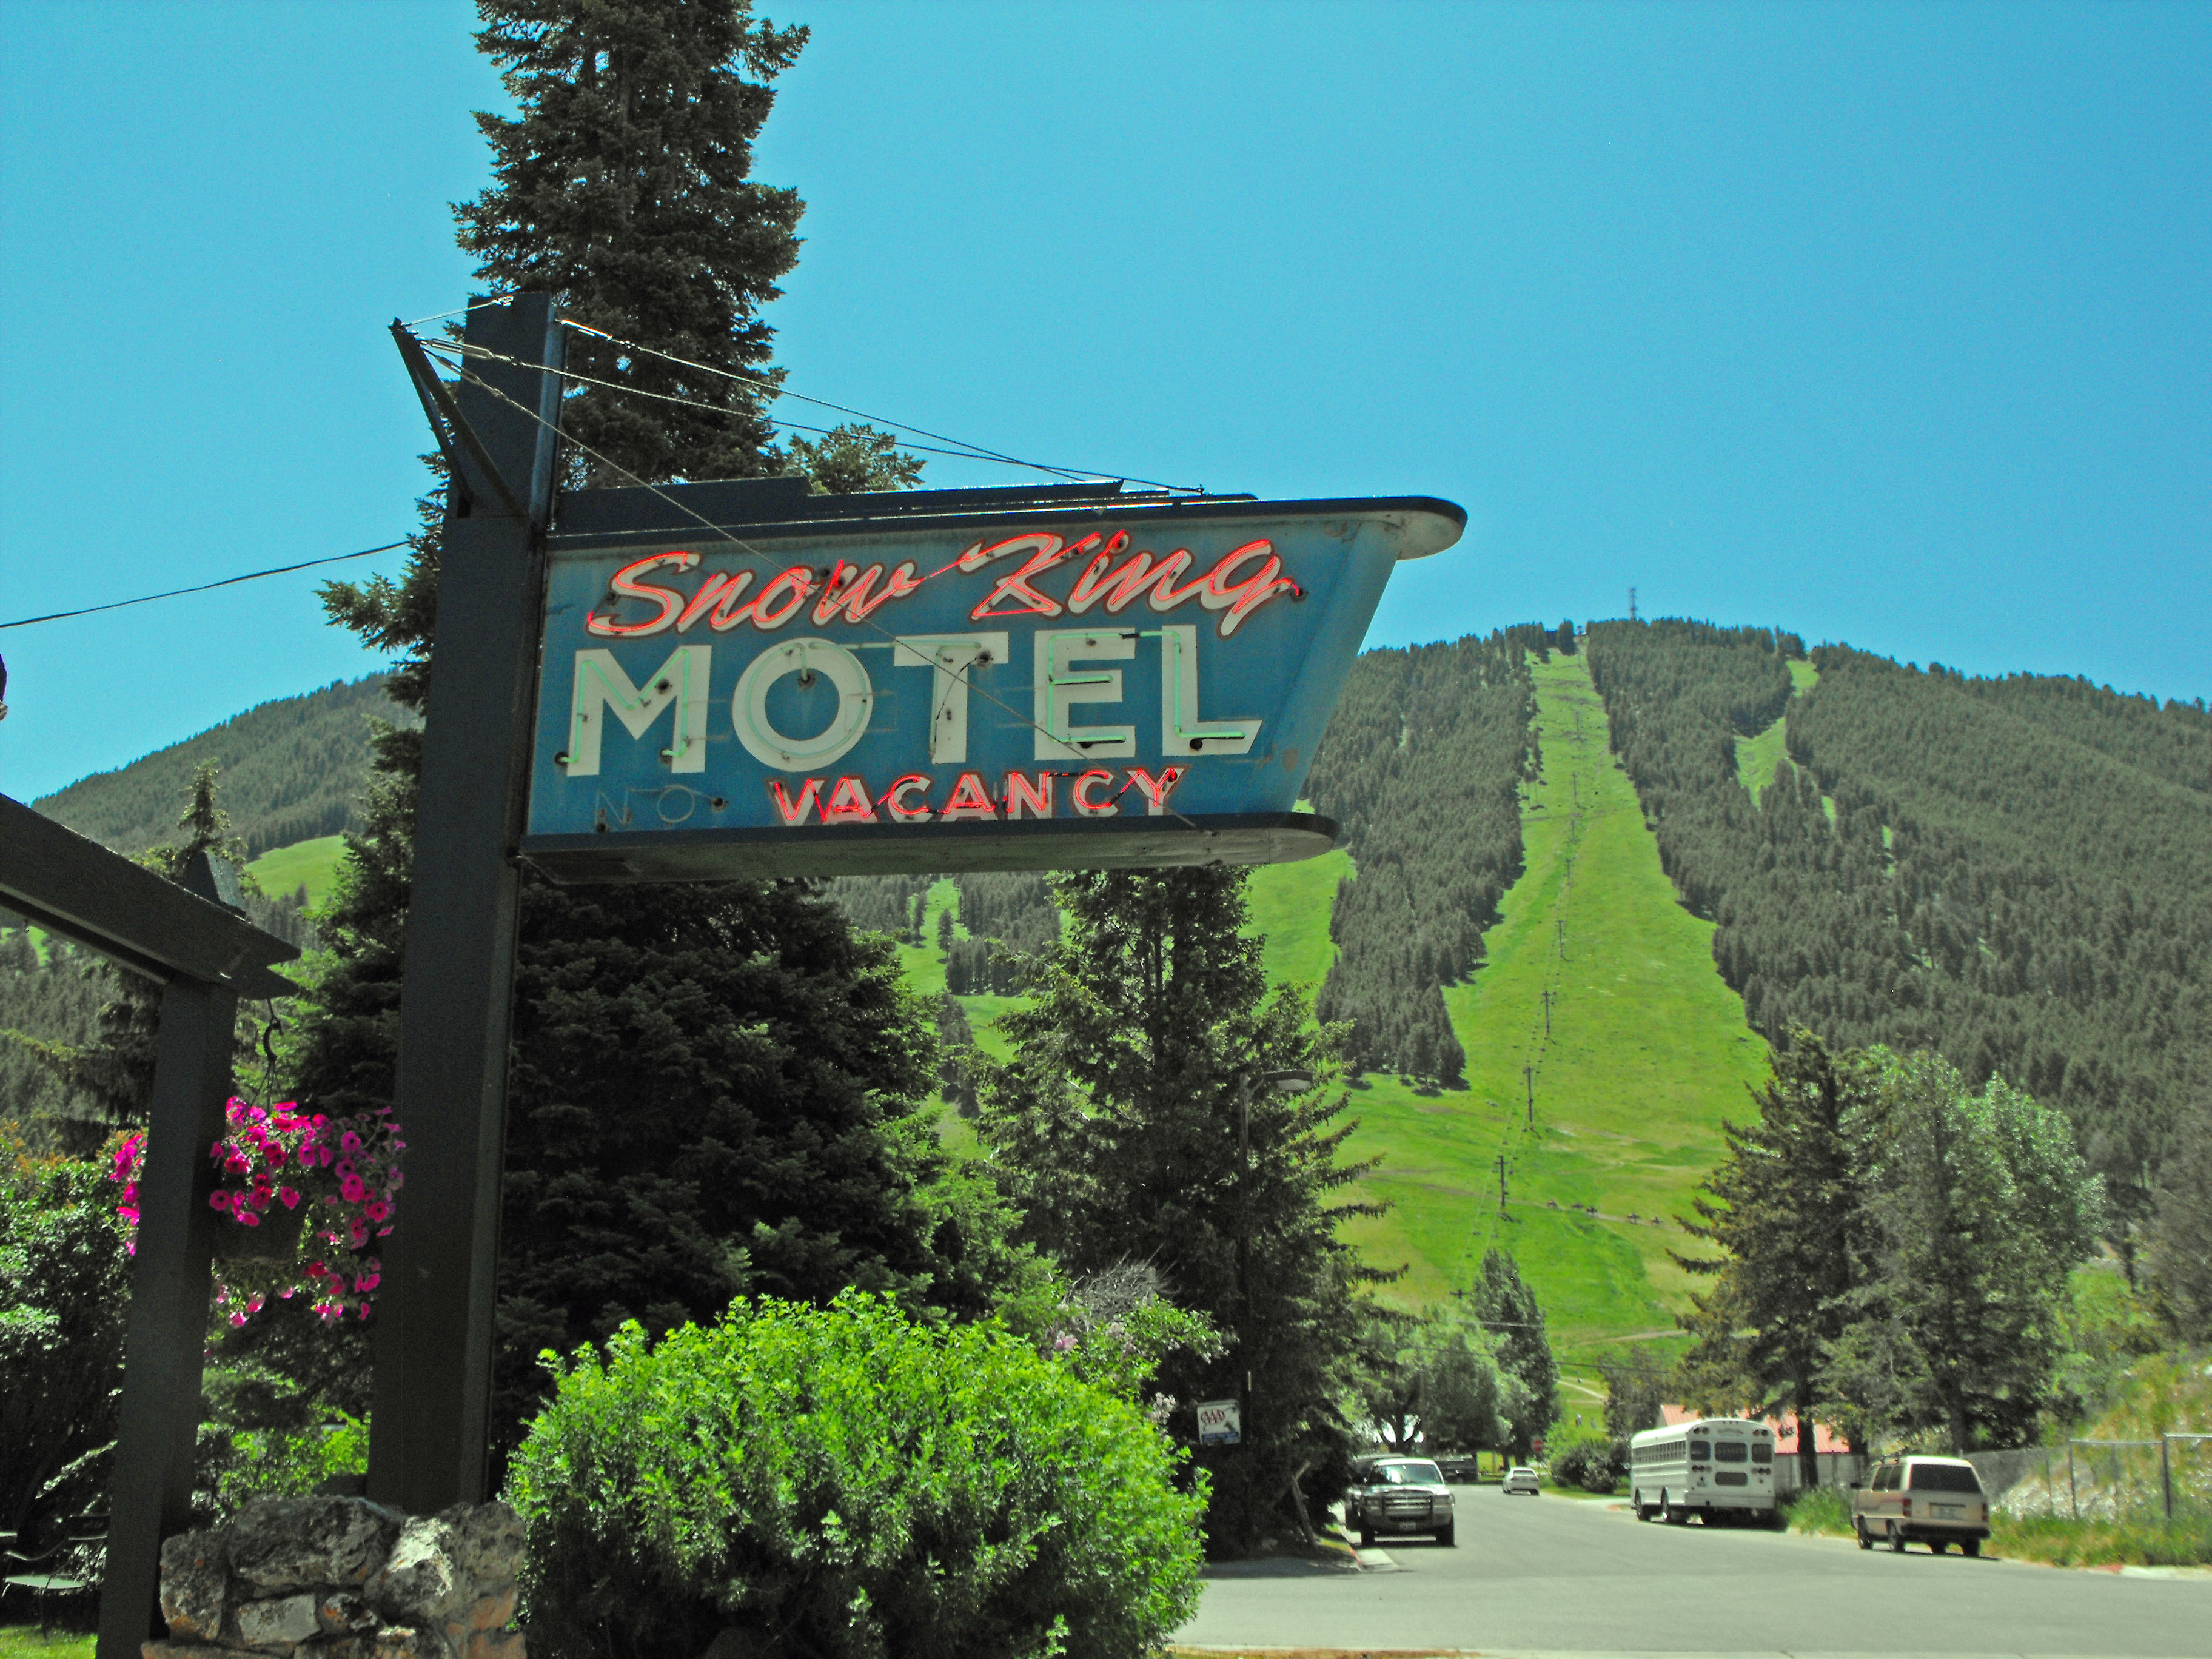 Snow King Motel